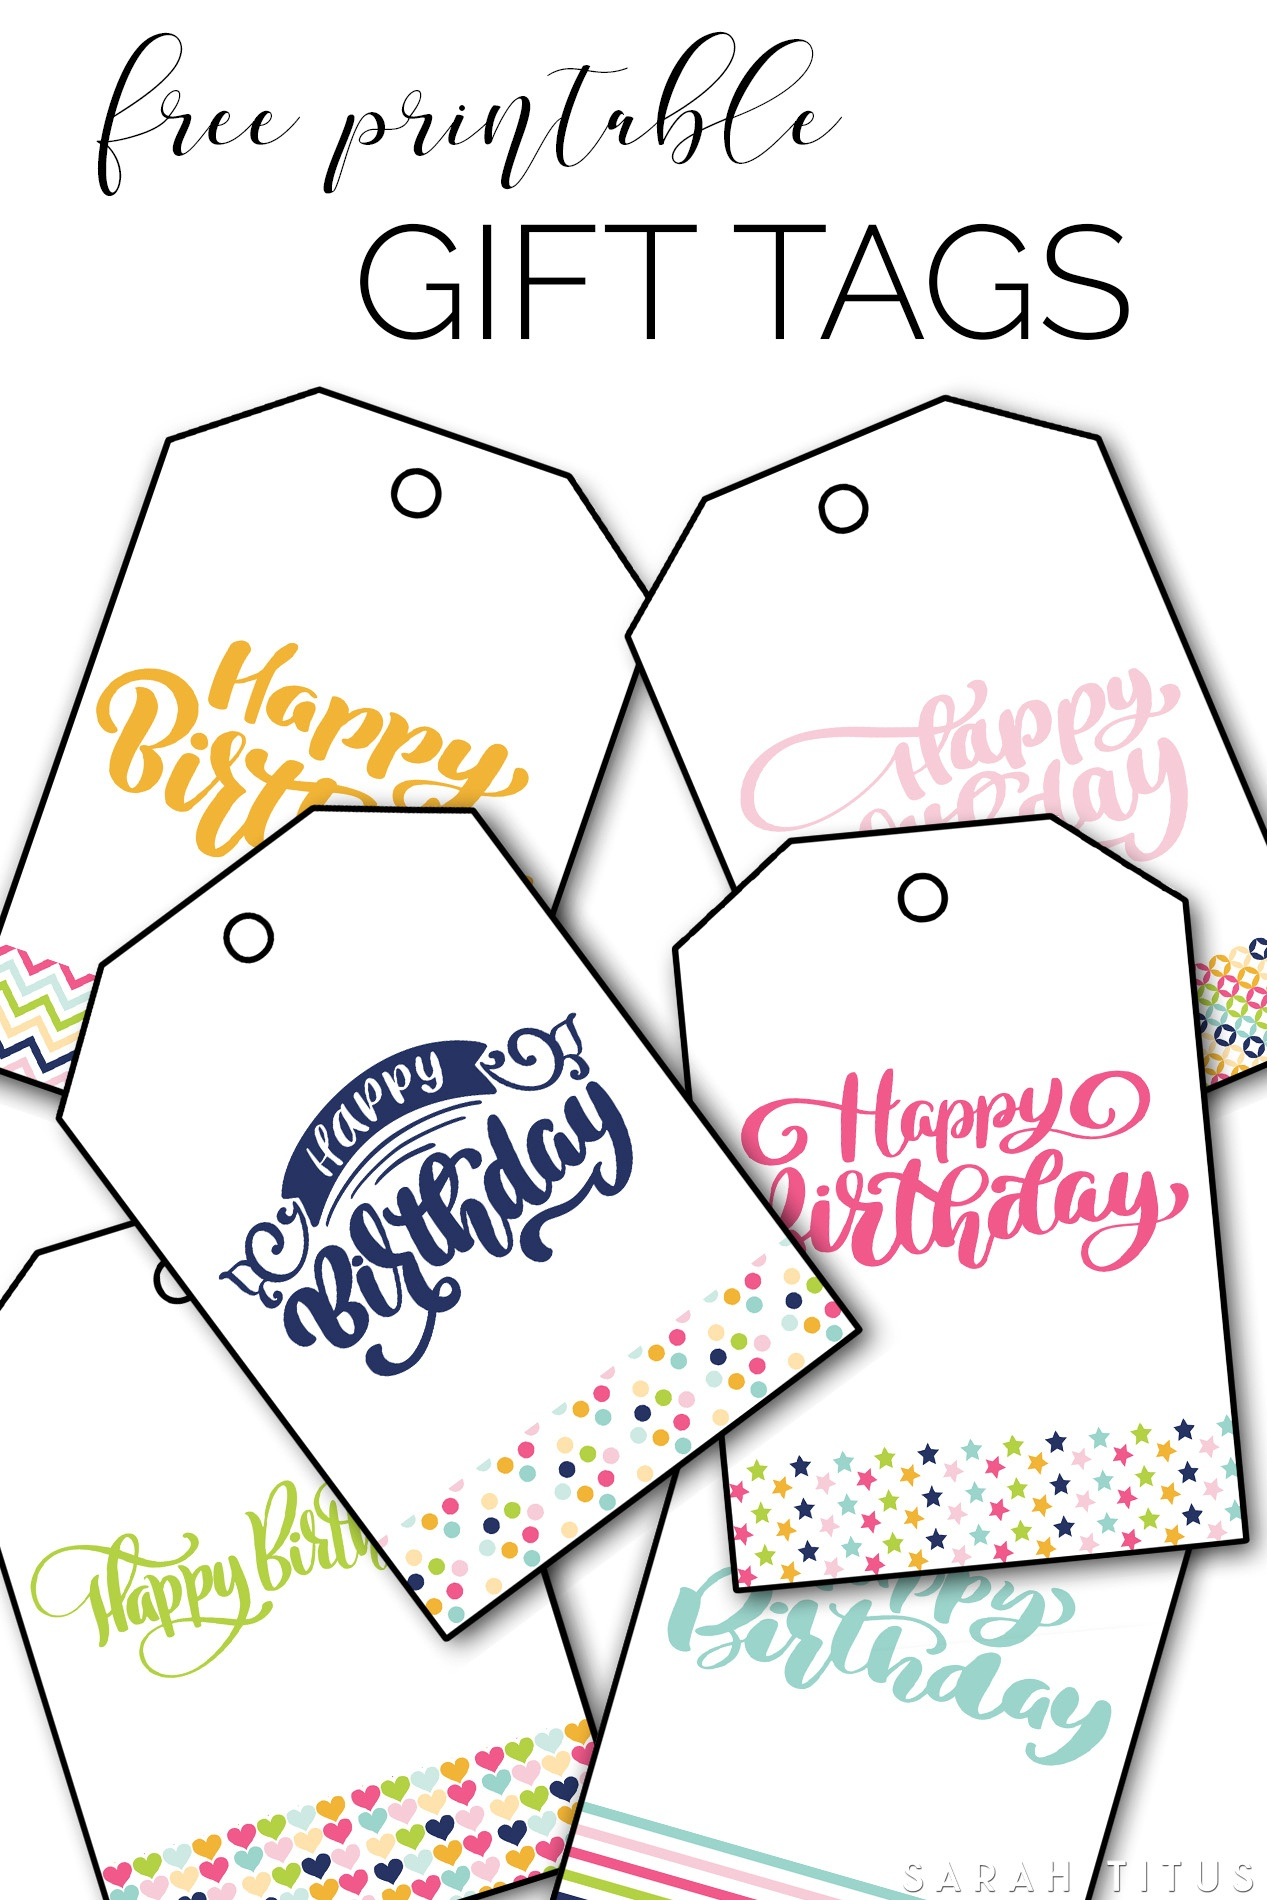 Free Printable Happy Birthday Gift Tags - Sarah Titus - Free Printable To From Gift Tags